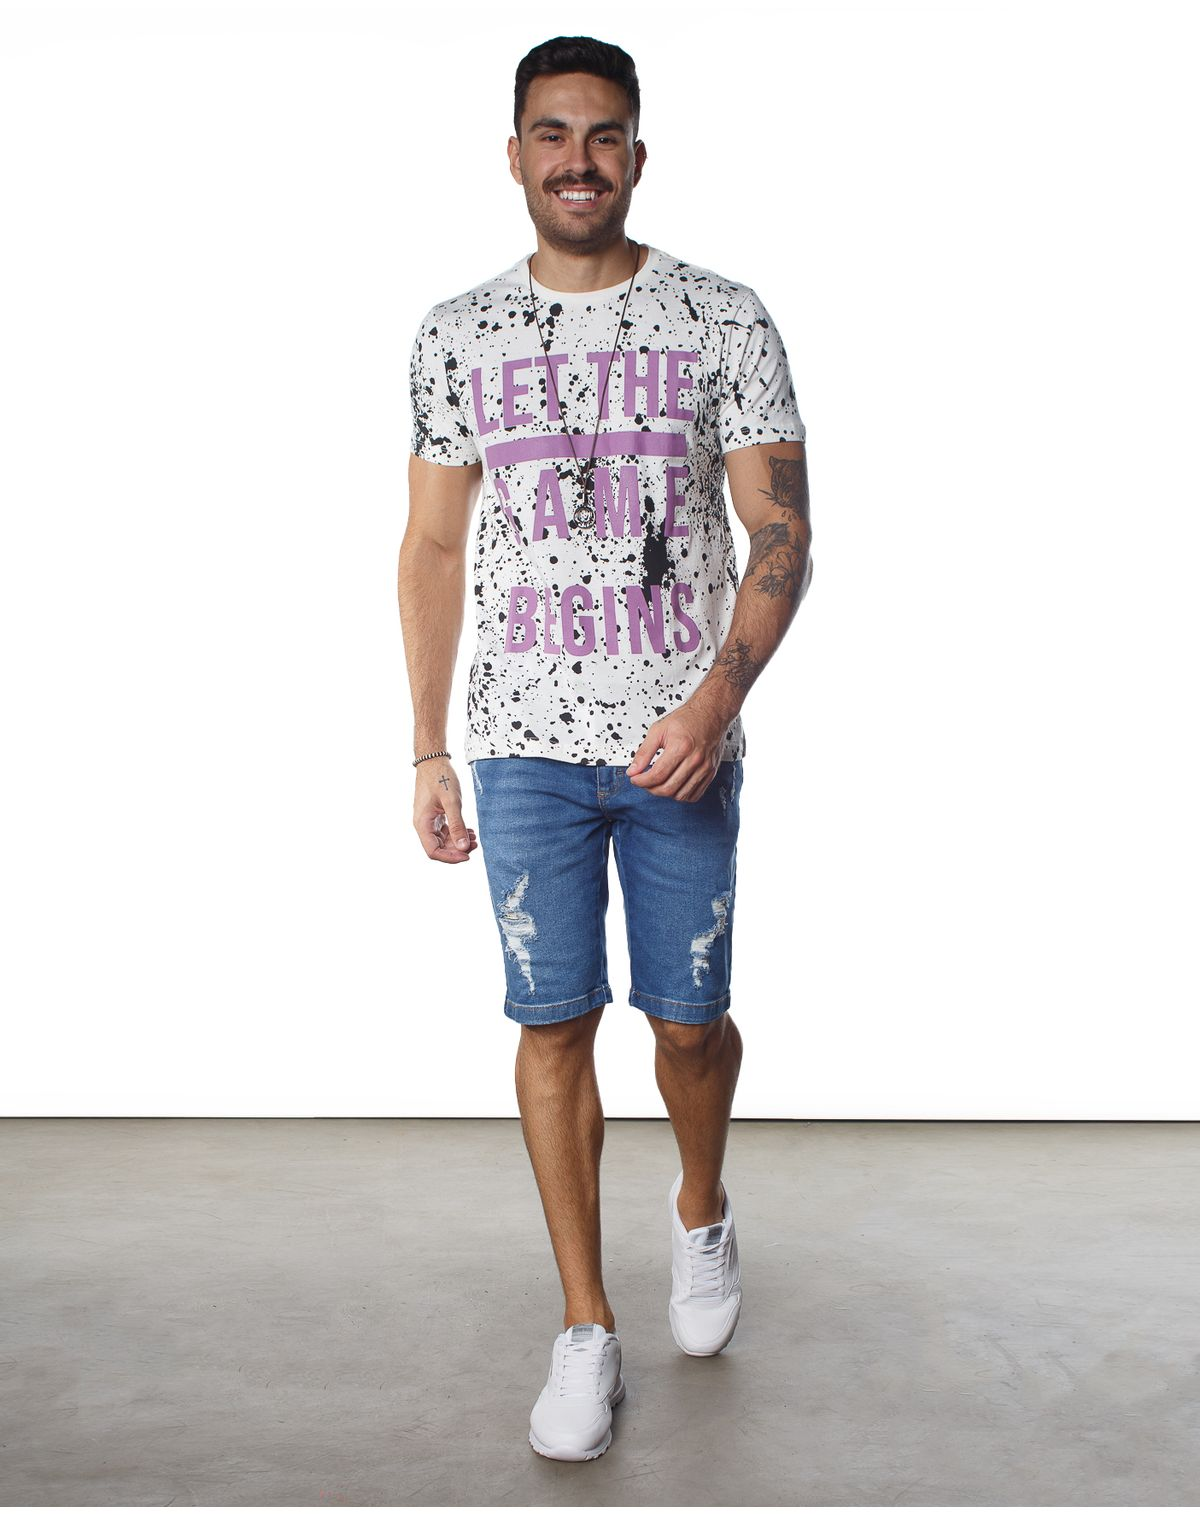 560318001-bermuda-jeans-masculina-destroyed-jeans-38-a23